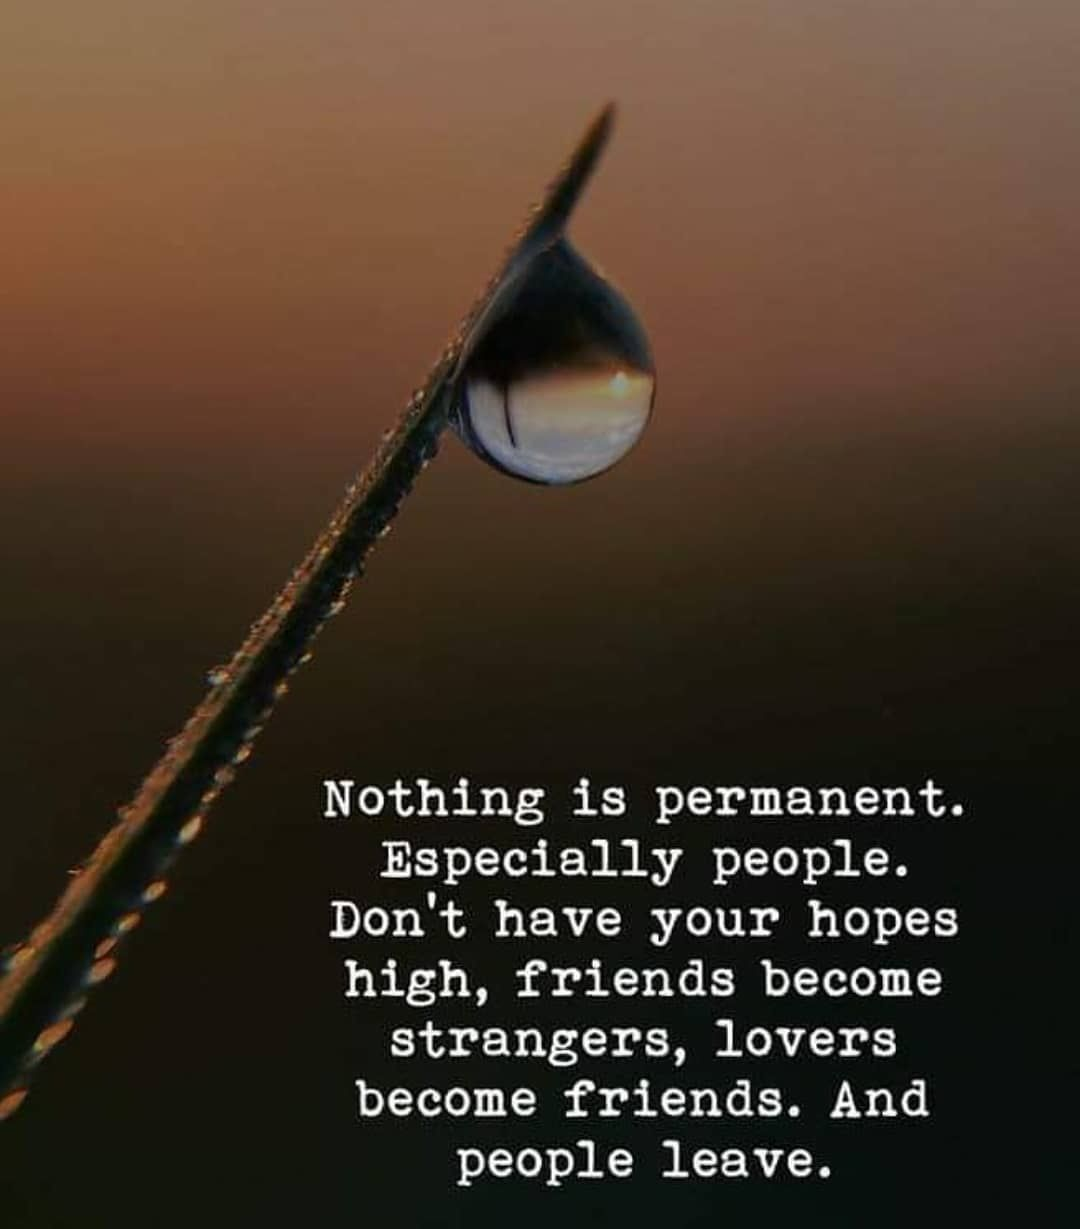 Nothing is permanent life quotes quotes quote life life lessons